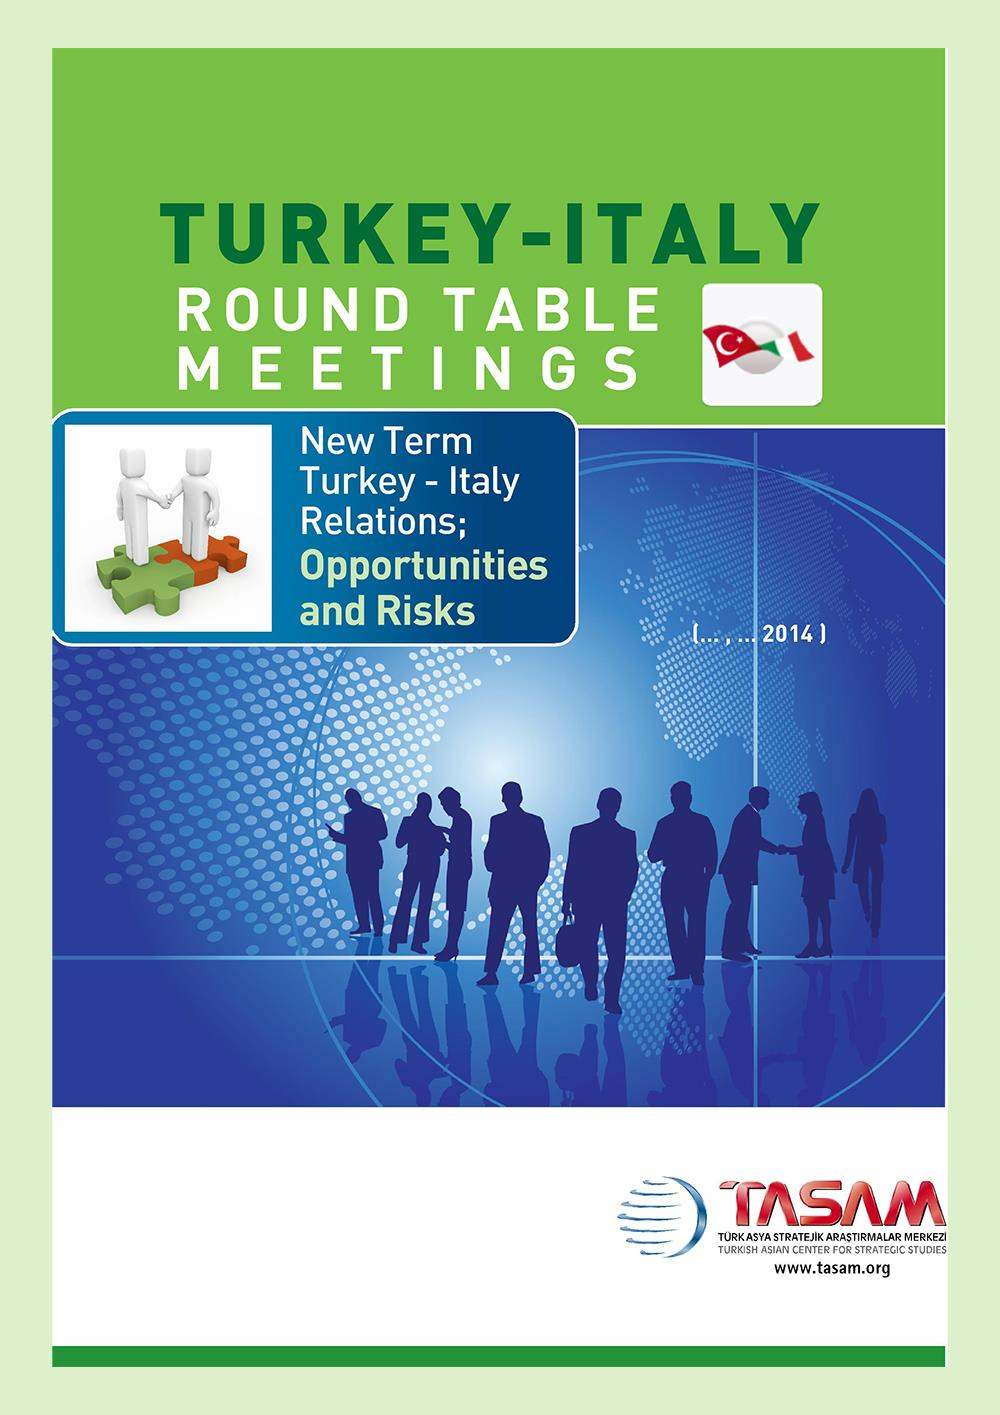 Turkey - Italy Round Table Meeting - 1